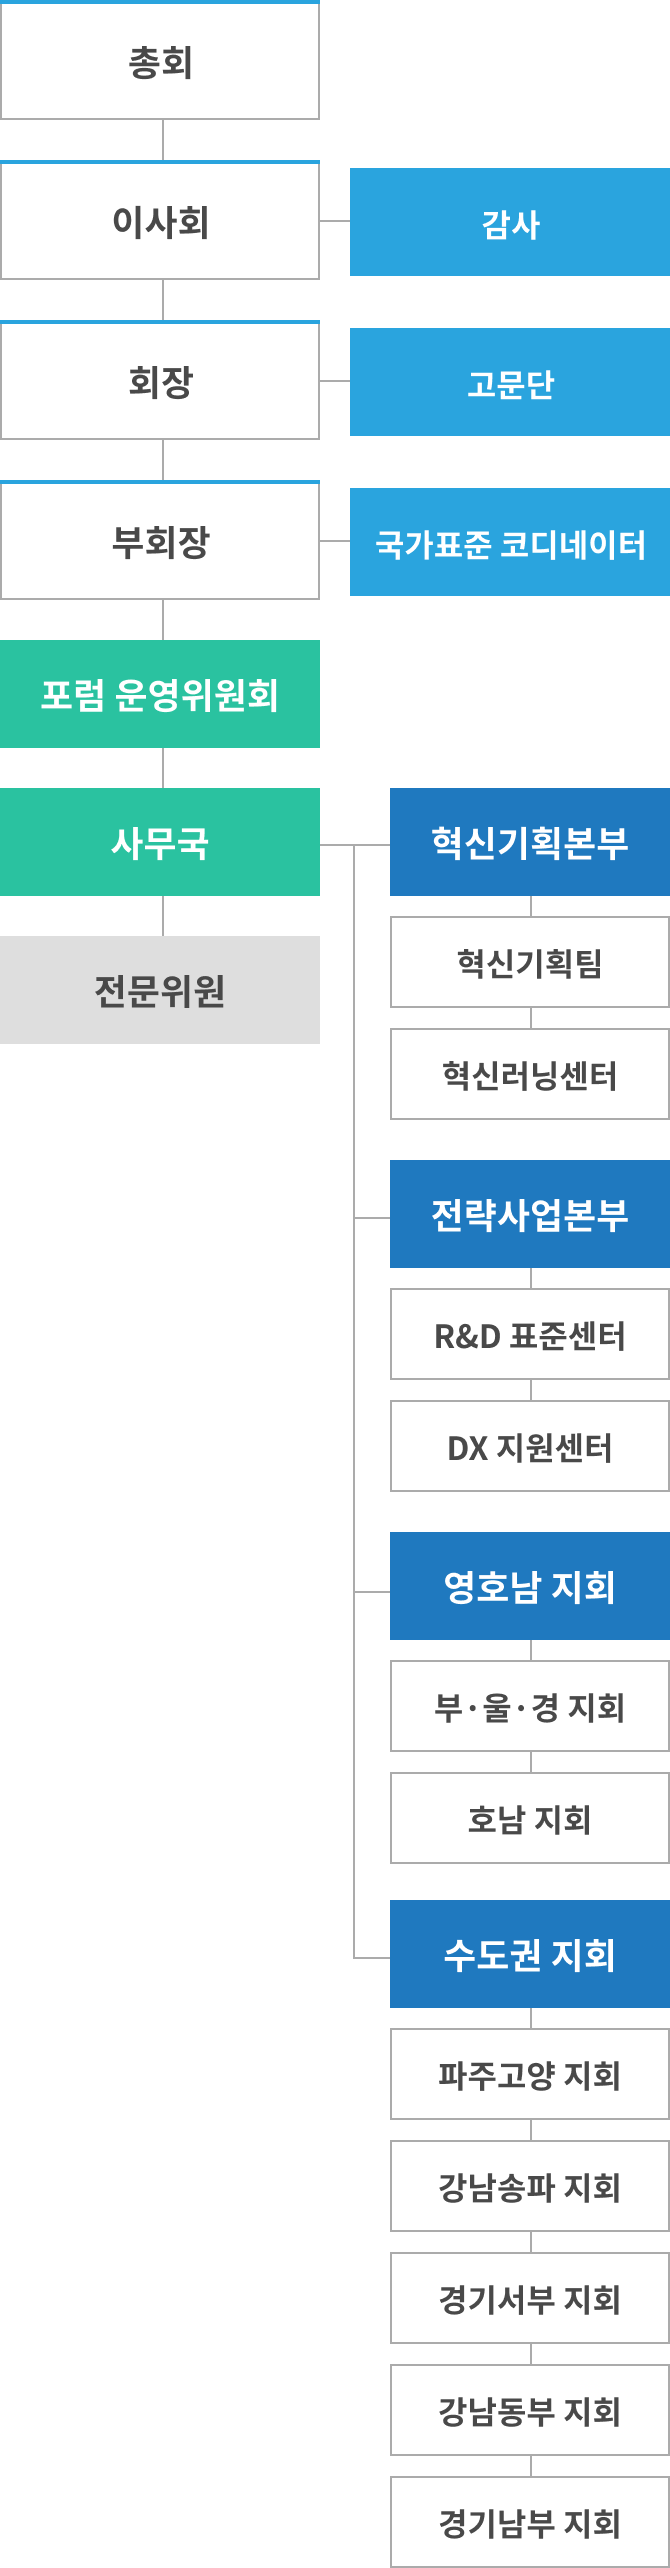 md_orgchart_img1.png